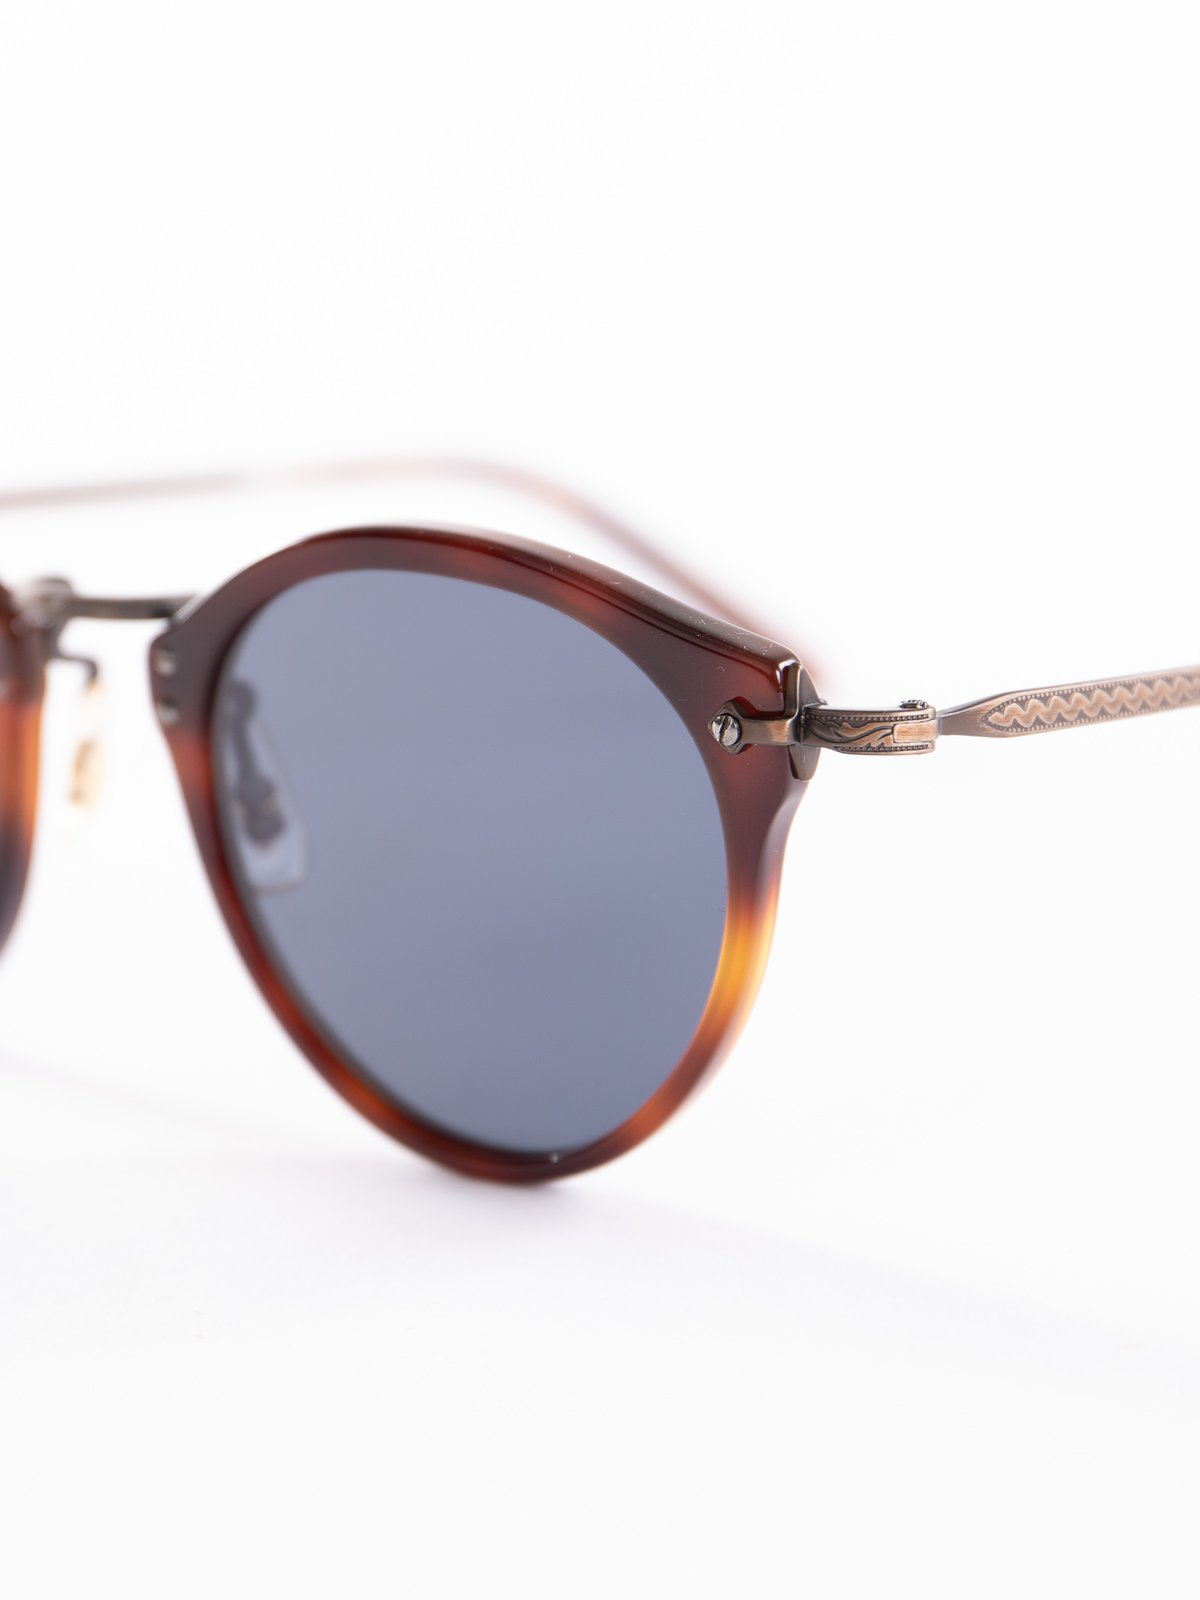 Dark Mahogany–Bronze–Blue OP–505 Sunglasses - Image 3